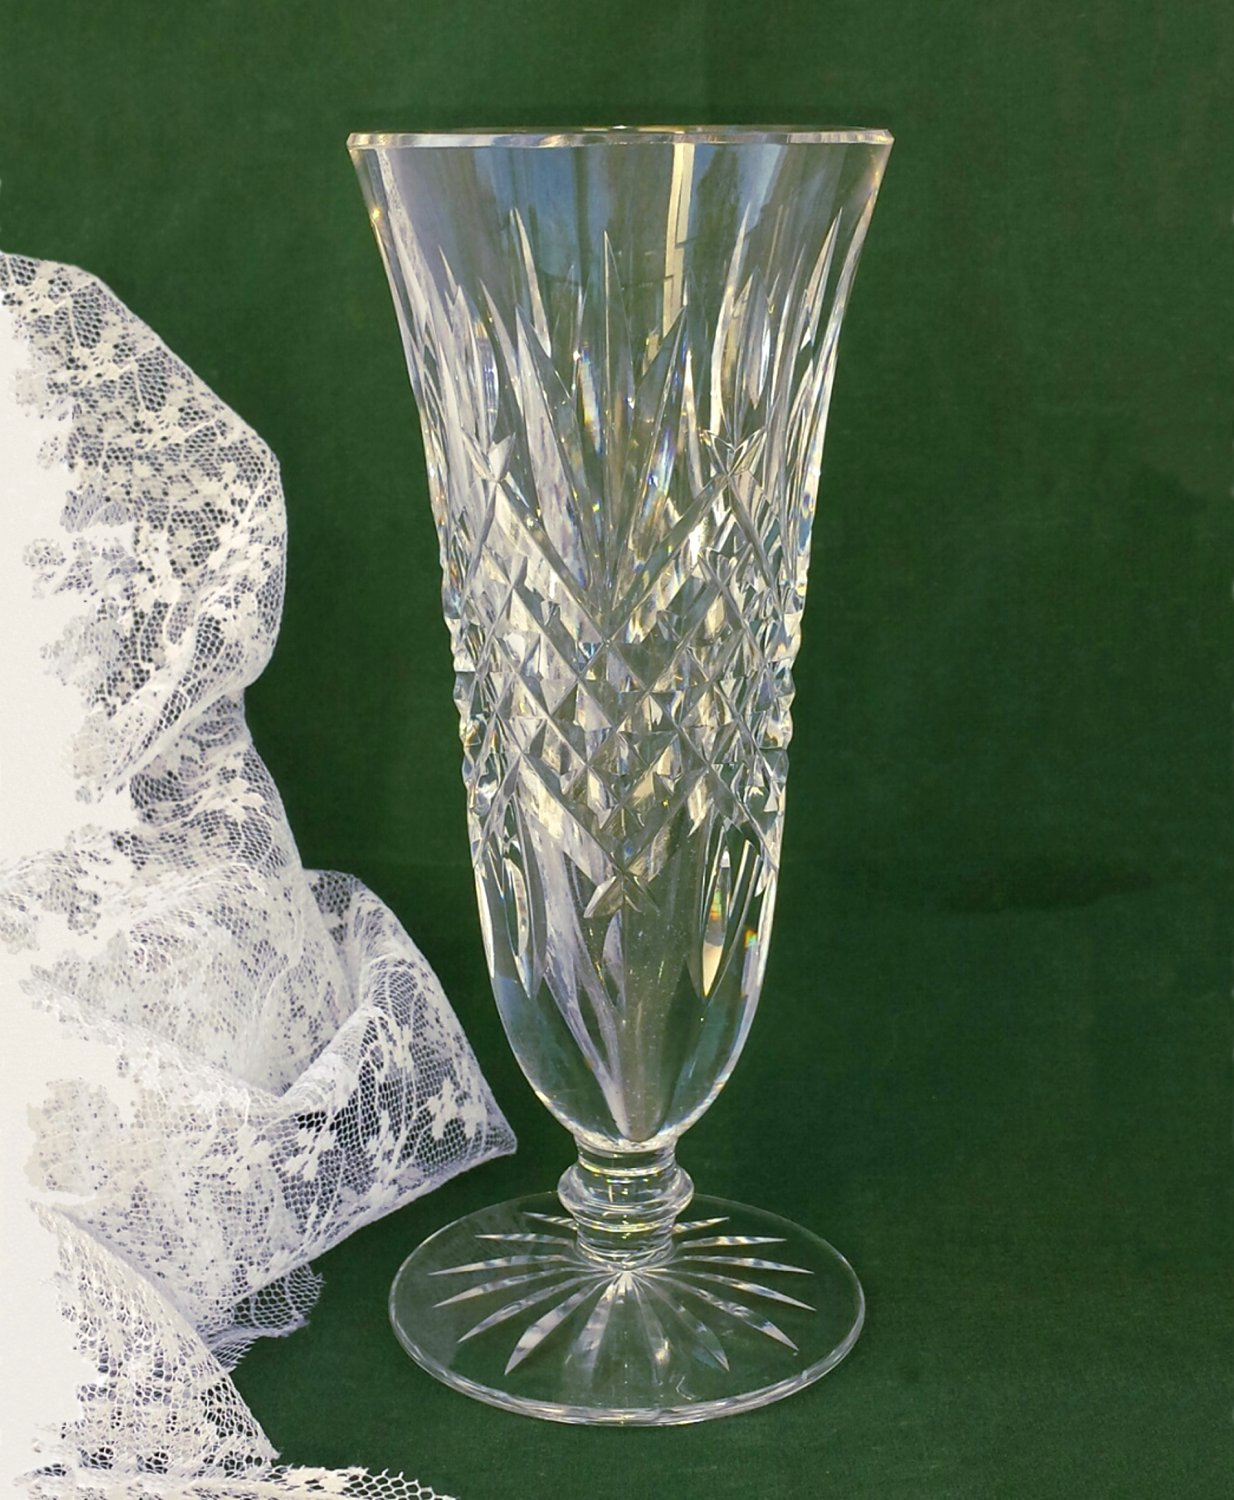 Signed Waterford Cut Glass Bud Vase Made in Ireland